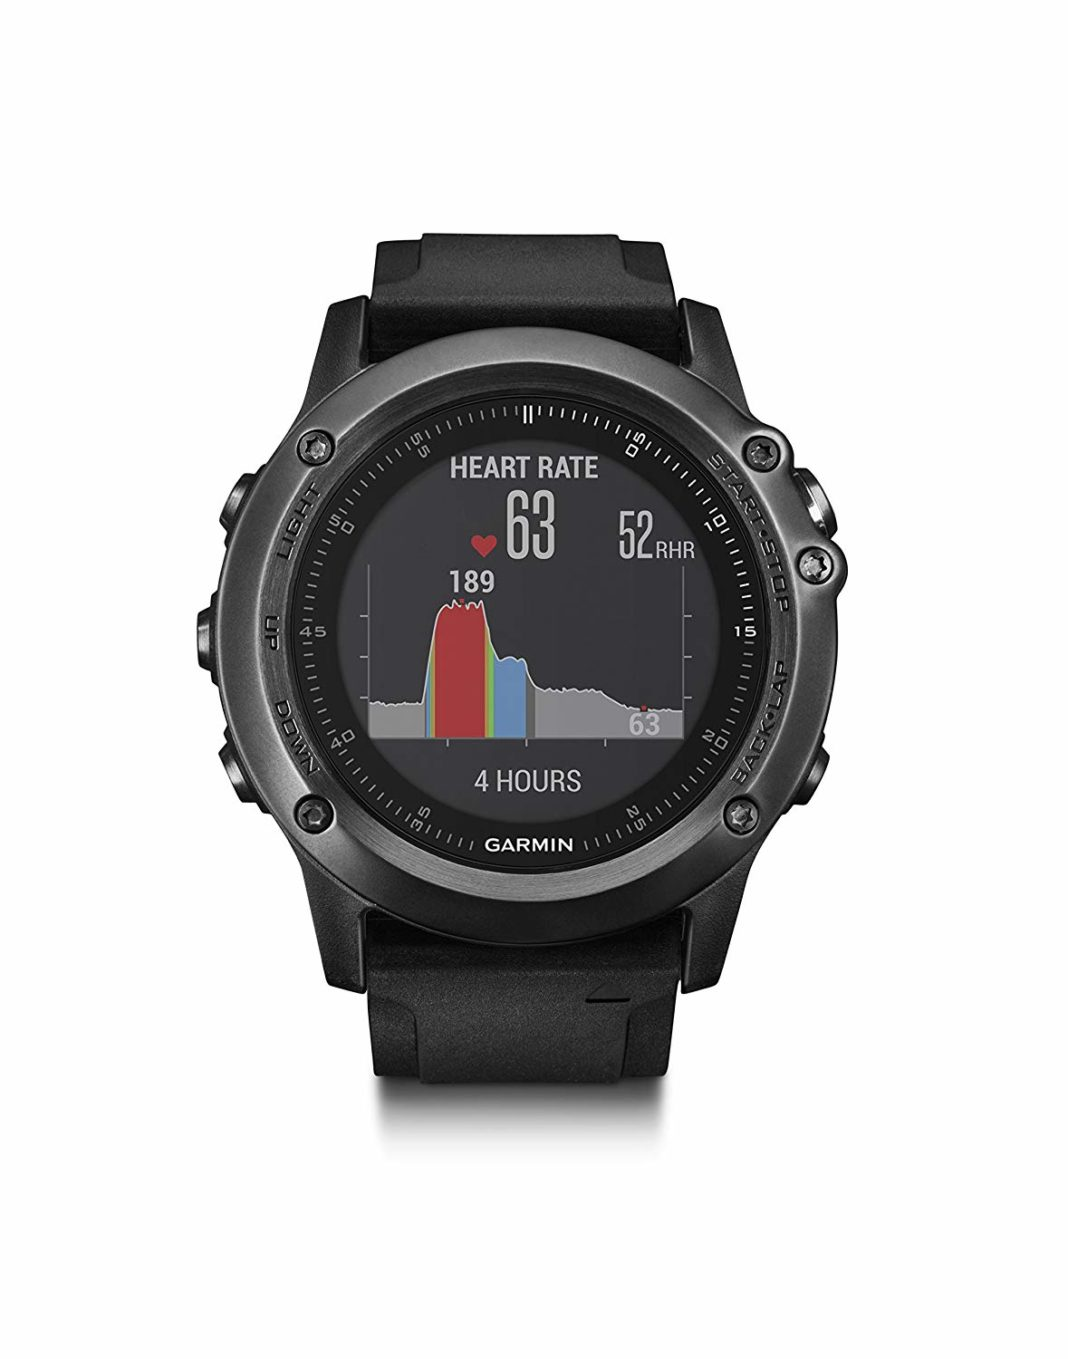 Garmin Fenix 3 HR - Wrist Heart Rate Technology